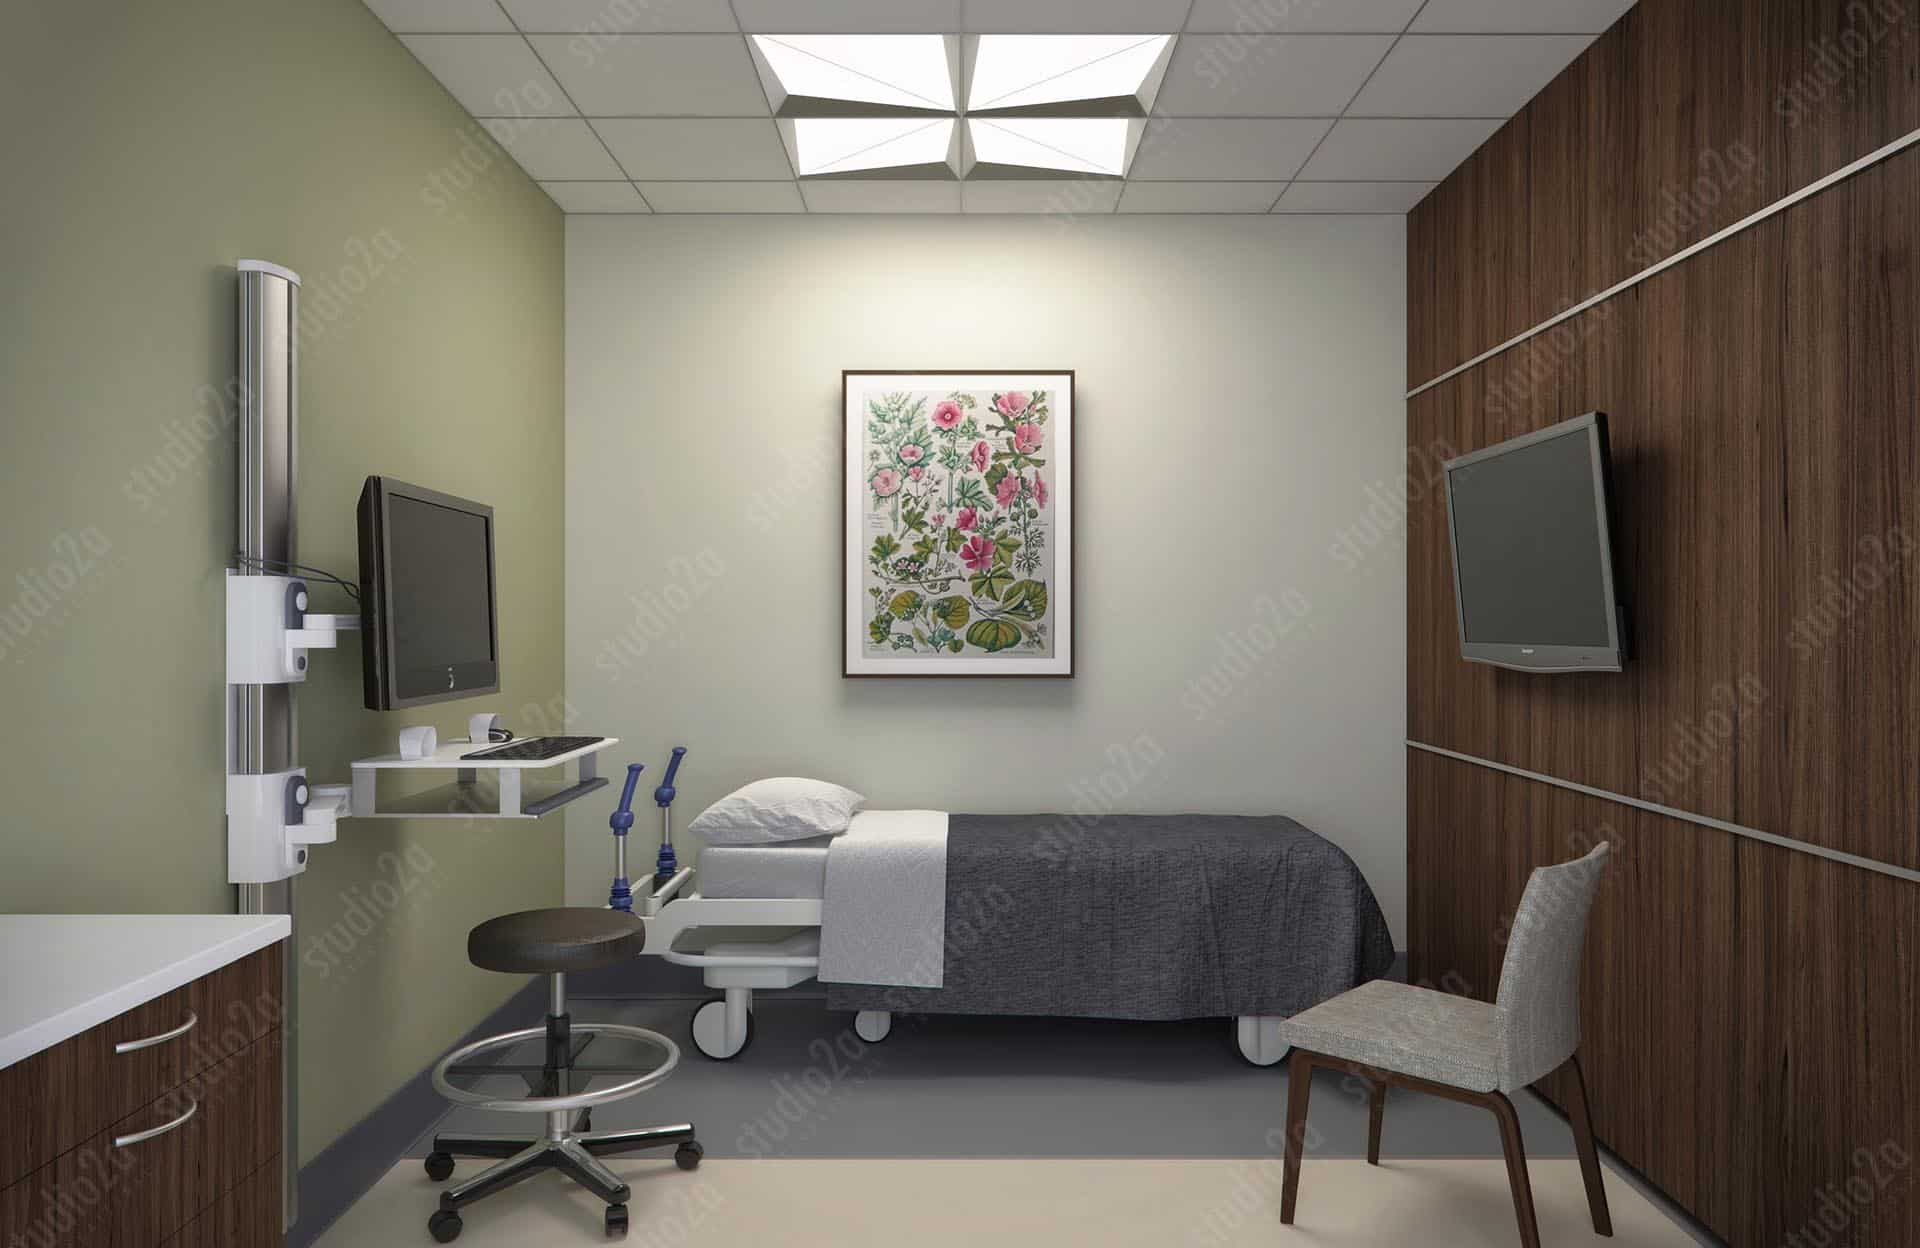 3d rendering interior healthcare focal point lighting fixture